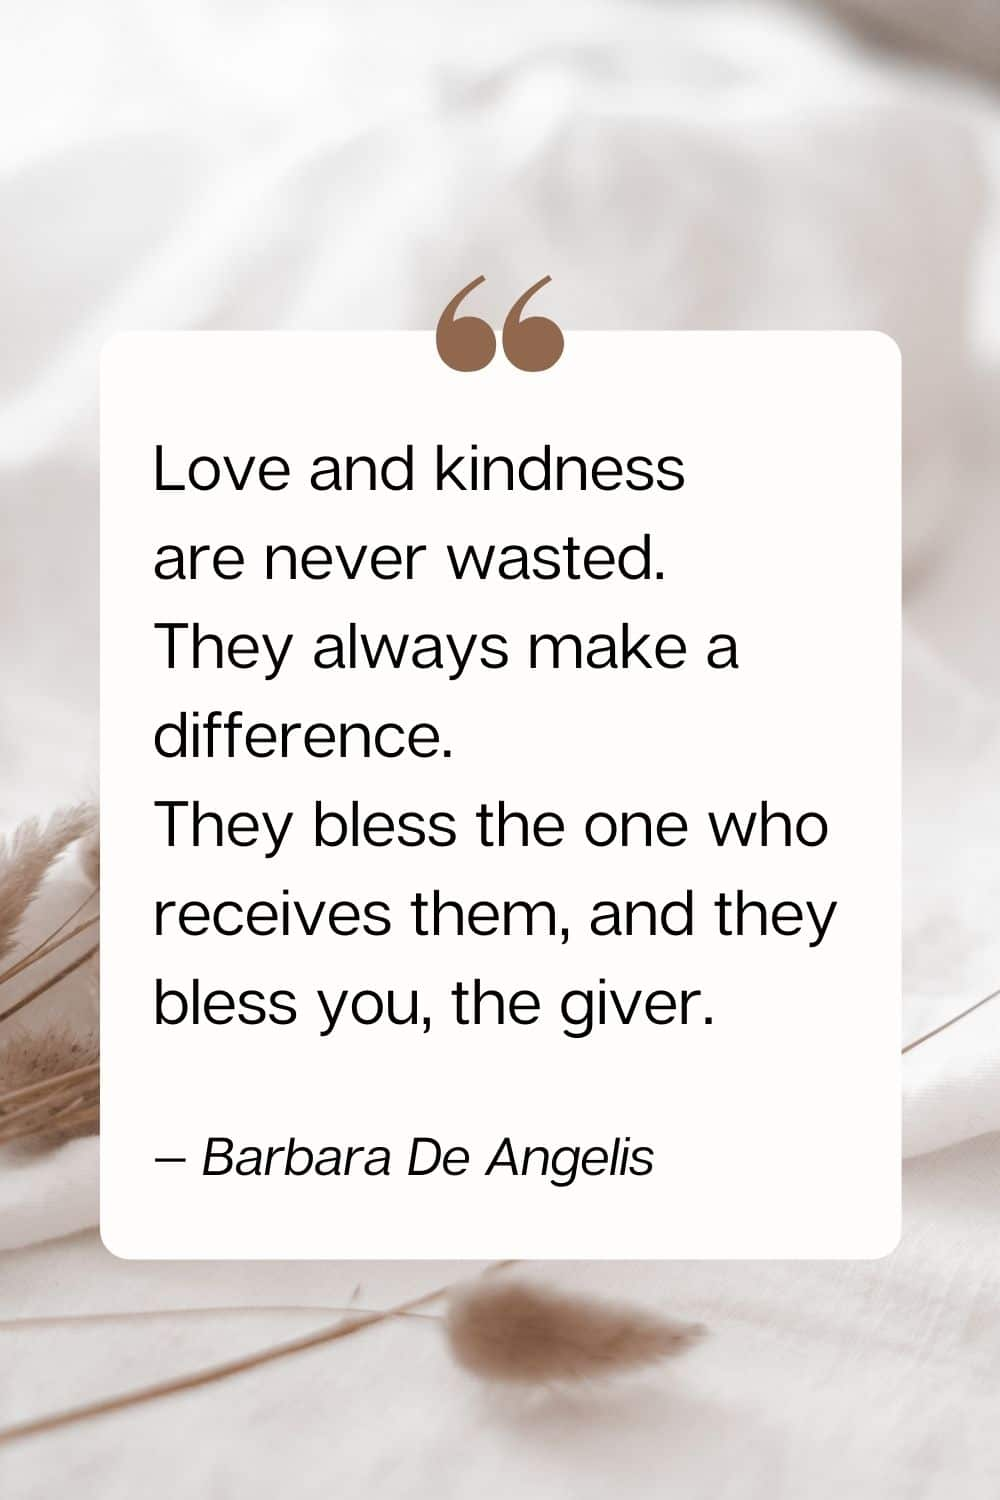 quote - Love and kindness are never wasted. They always make a difference. They bless the one who receives them, and they bless you, the giver. — Barbara De Angelis